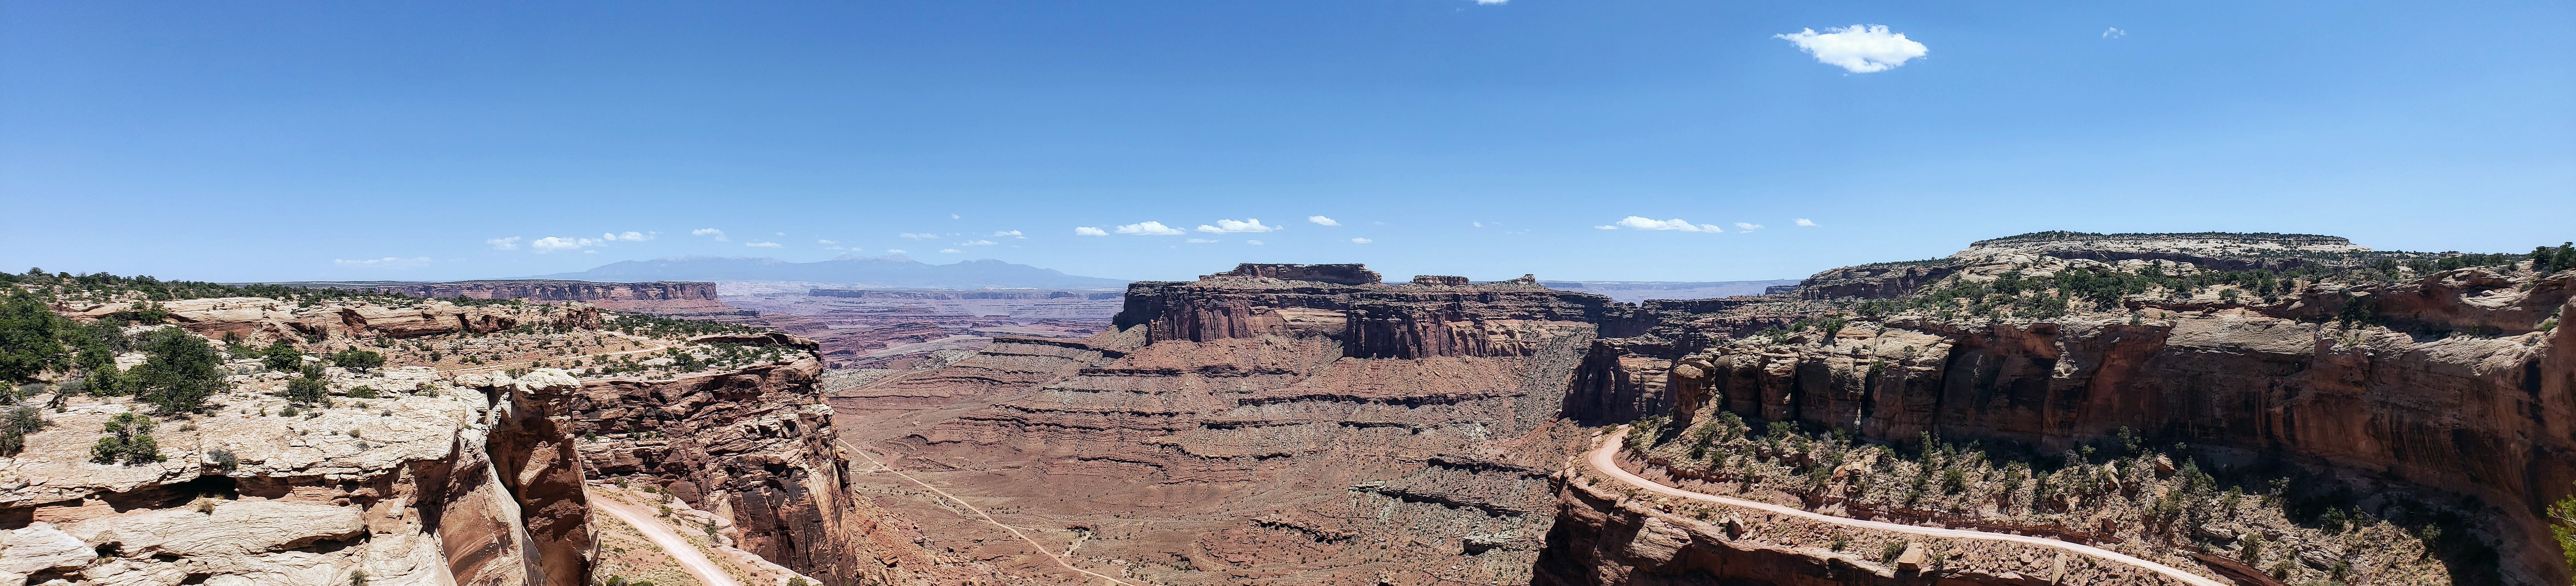 Arches & Canyonlands National Park, UT, USA – 2 Day Trip